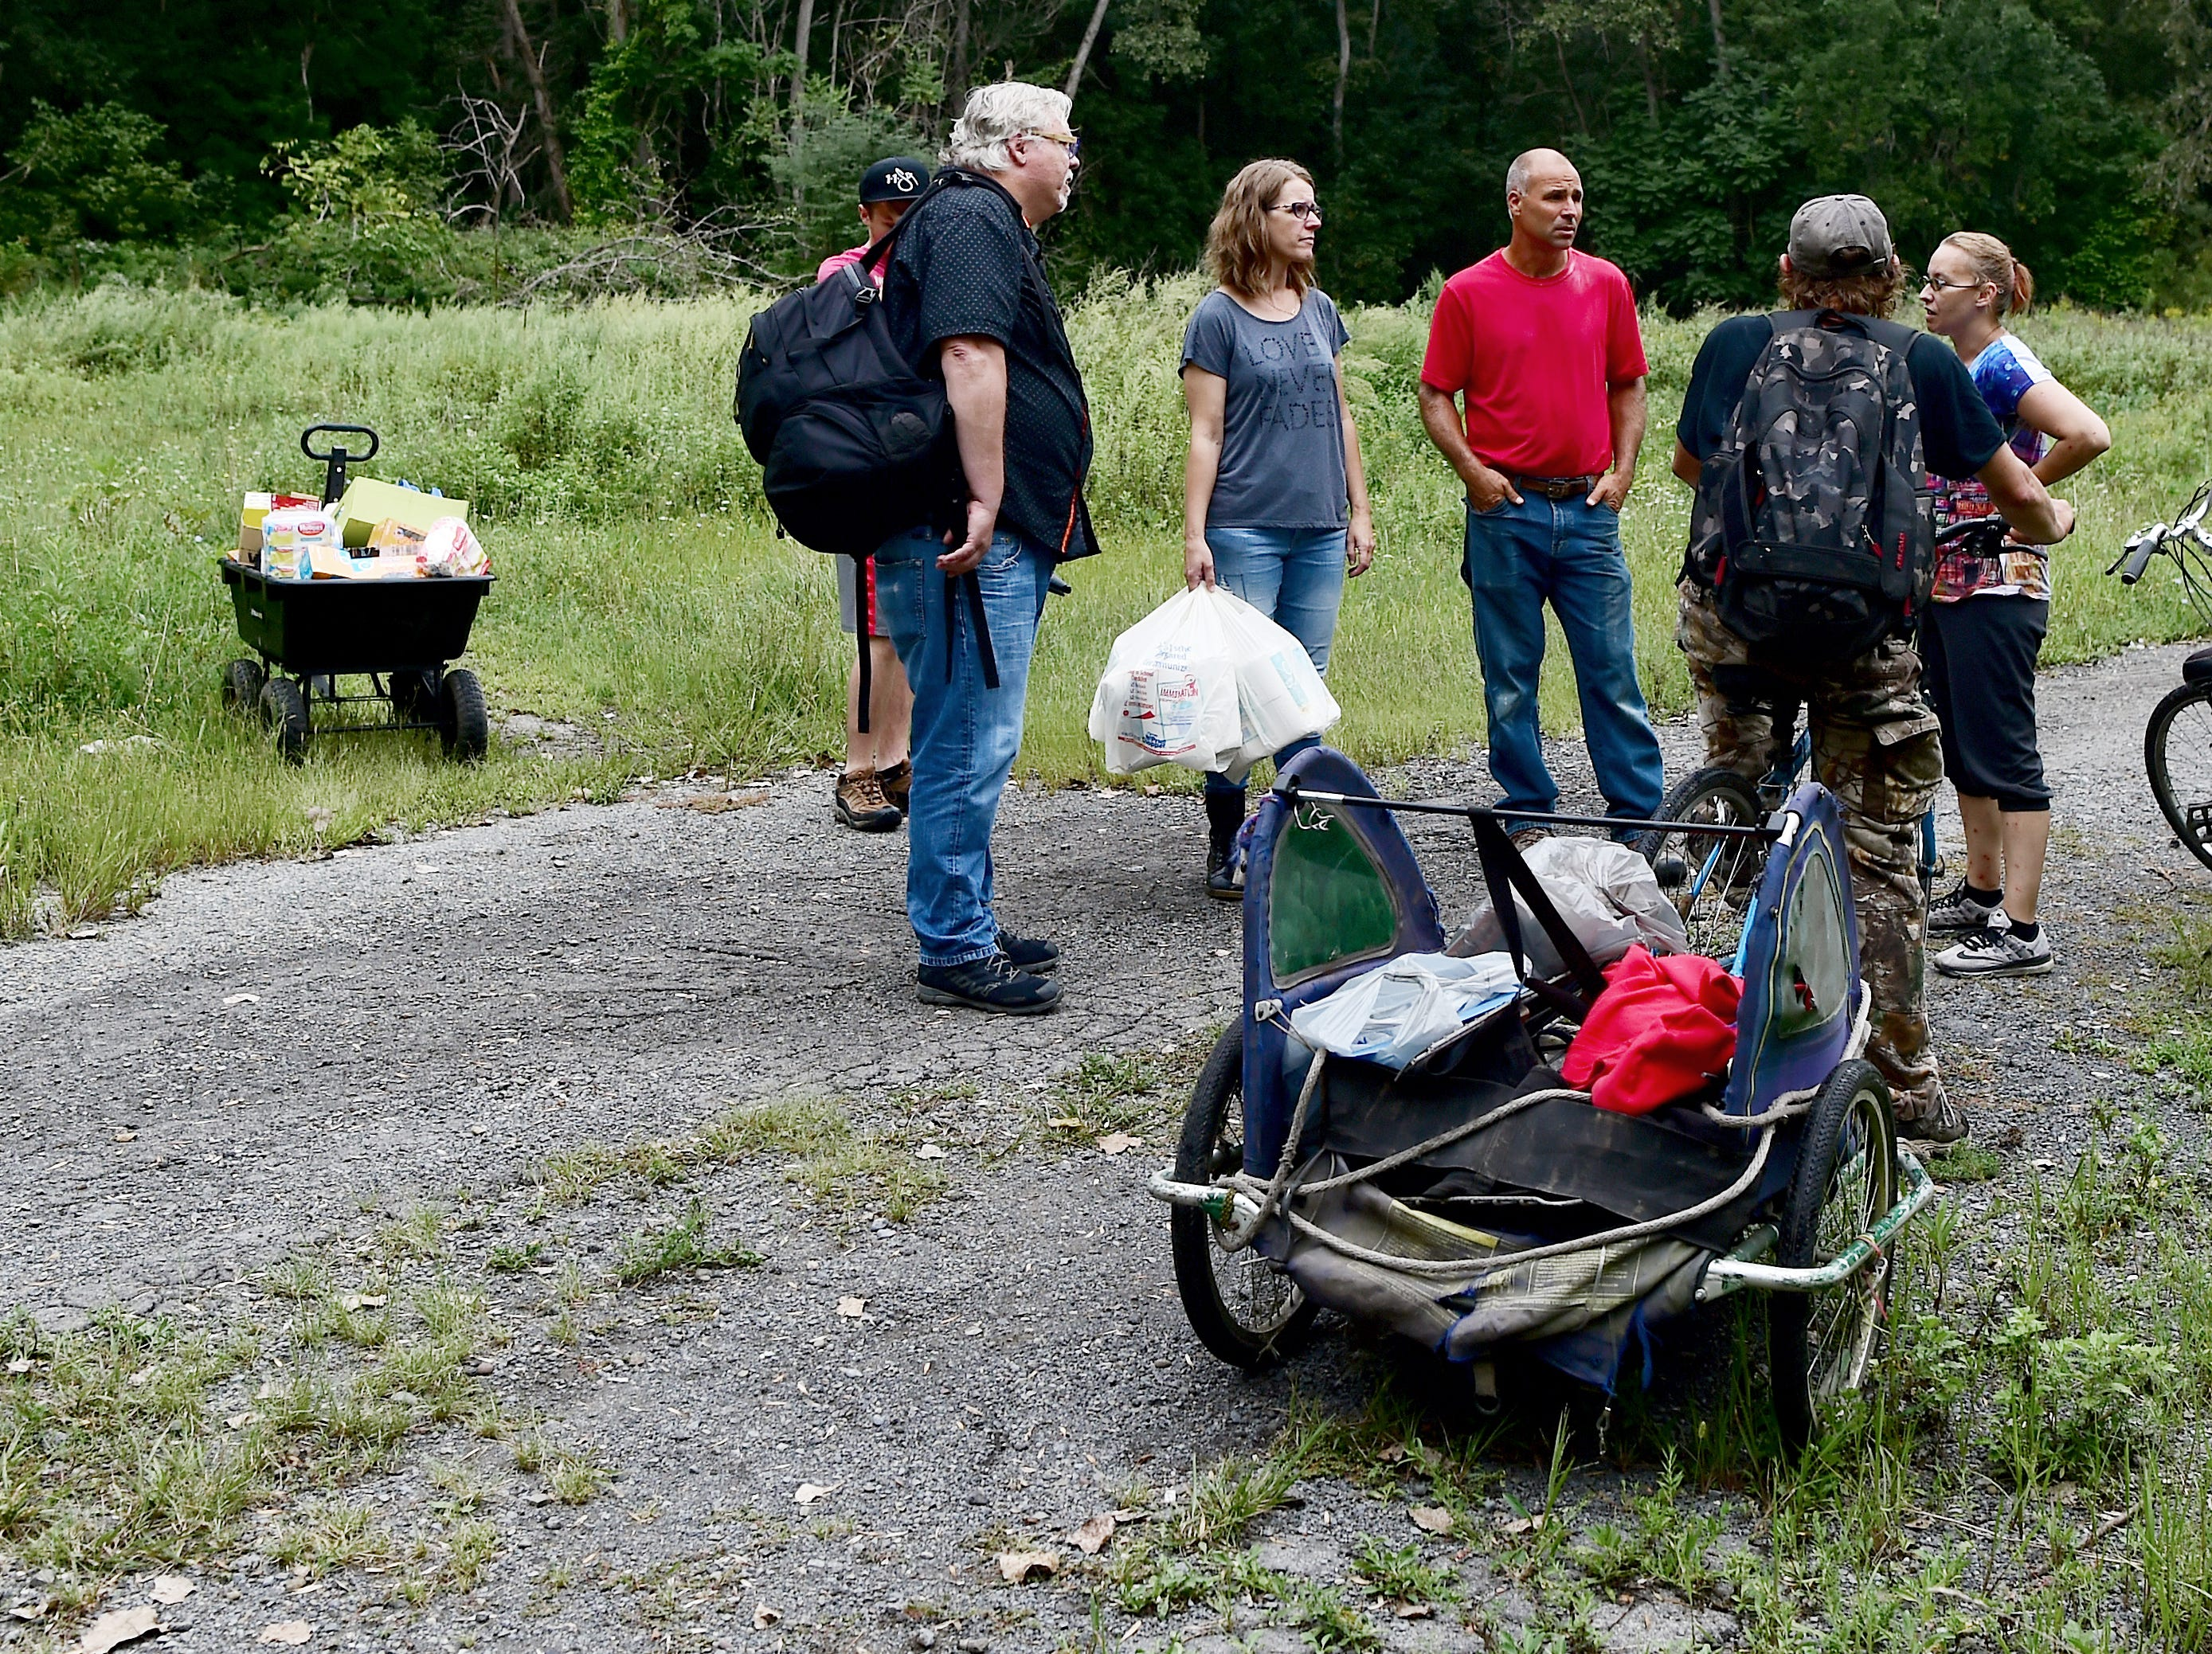 """Mark Horvath of Binghamton, Noah and Deb Wilke of Horseheads, and Carmen Guidi of Newfield, deliver essential supplies including water, toilet paper and bug repellant, to """"The Jungle"""" in Ithaca on August 31, 2018. Located behind the shopping centers along Rt. 13, The Jungle is home to dozens of homeless people."""